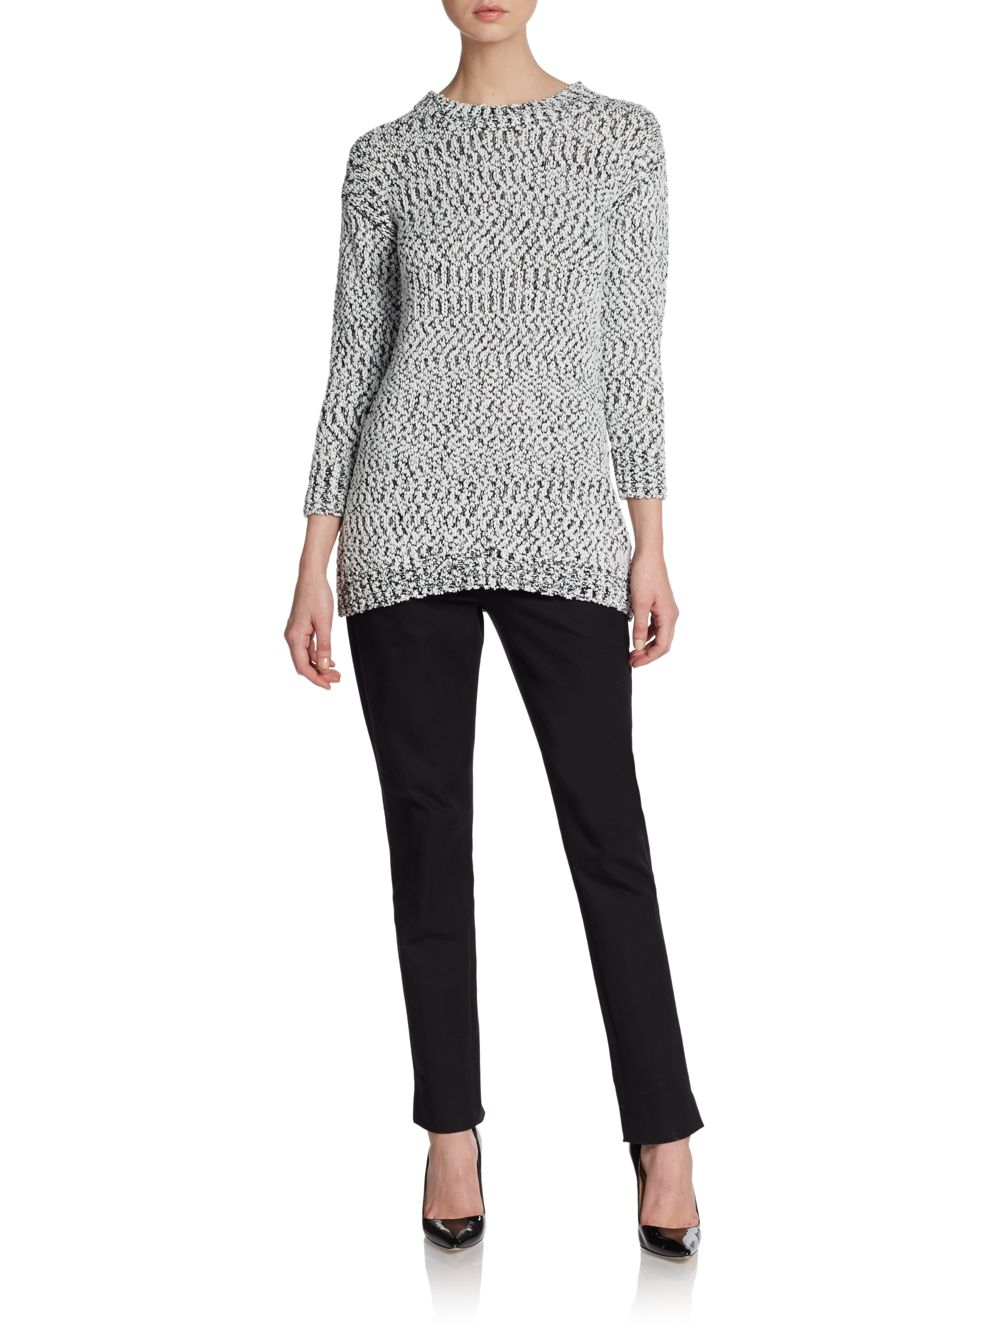 Saks fifth avenue Tweed-texture Knit Sweater in White